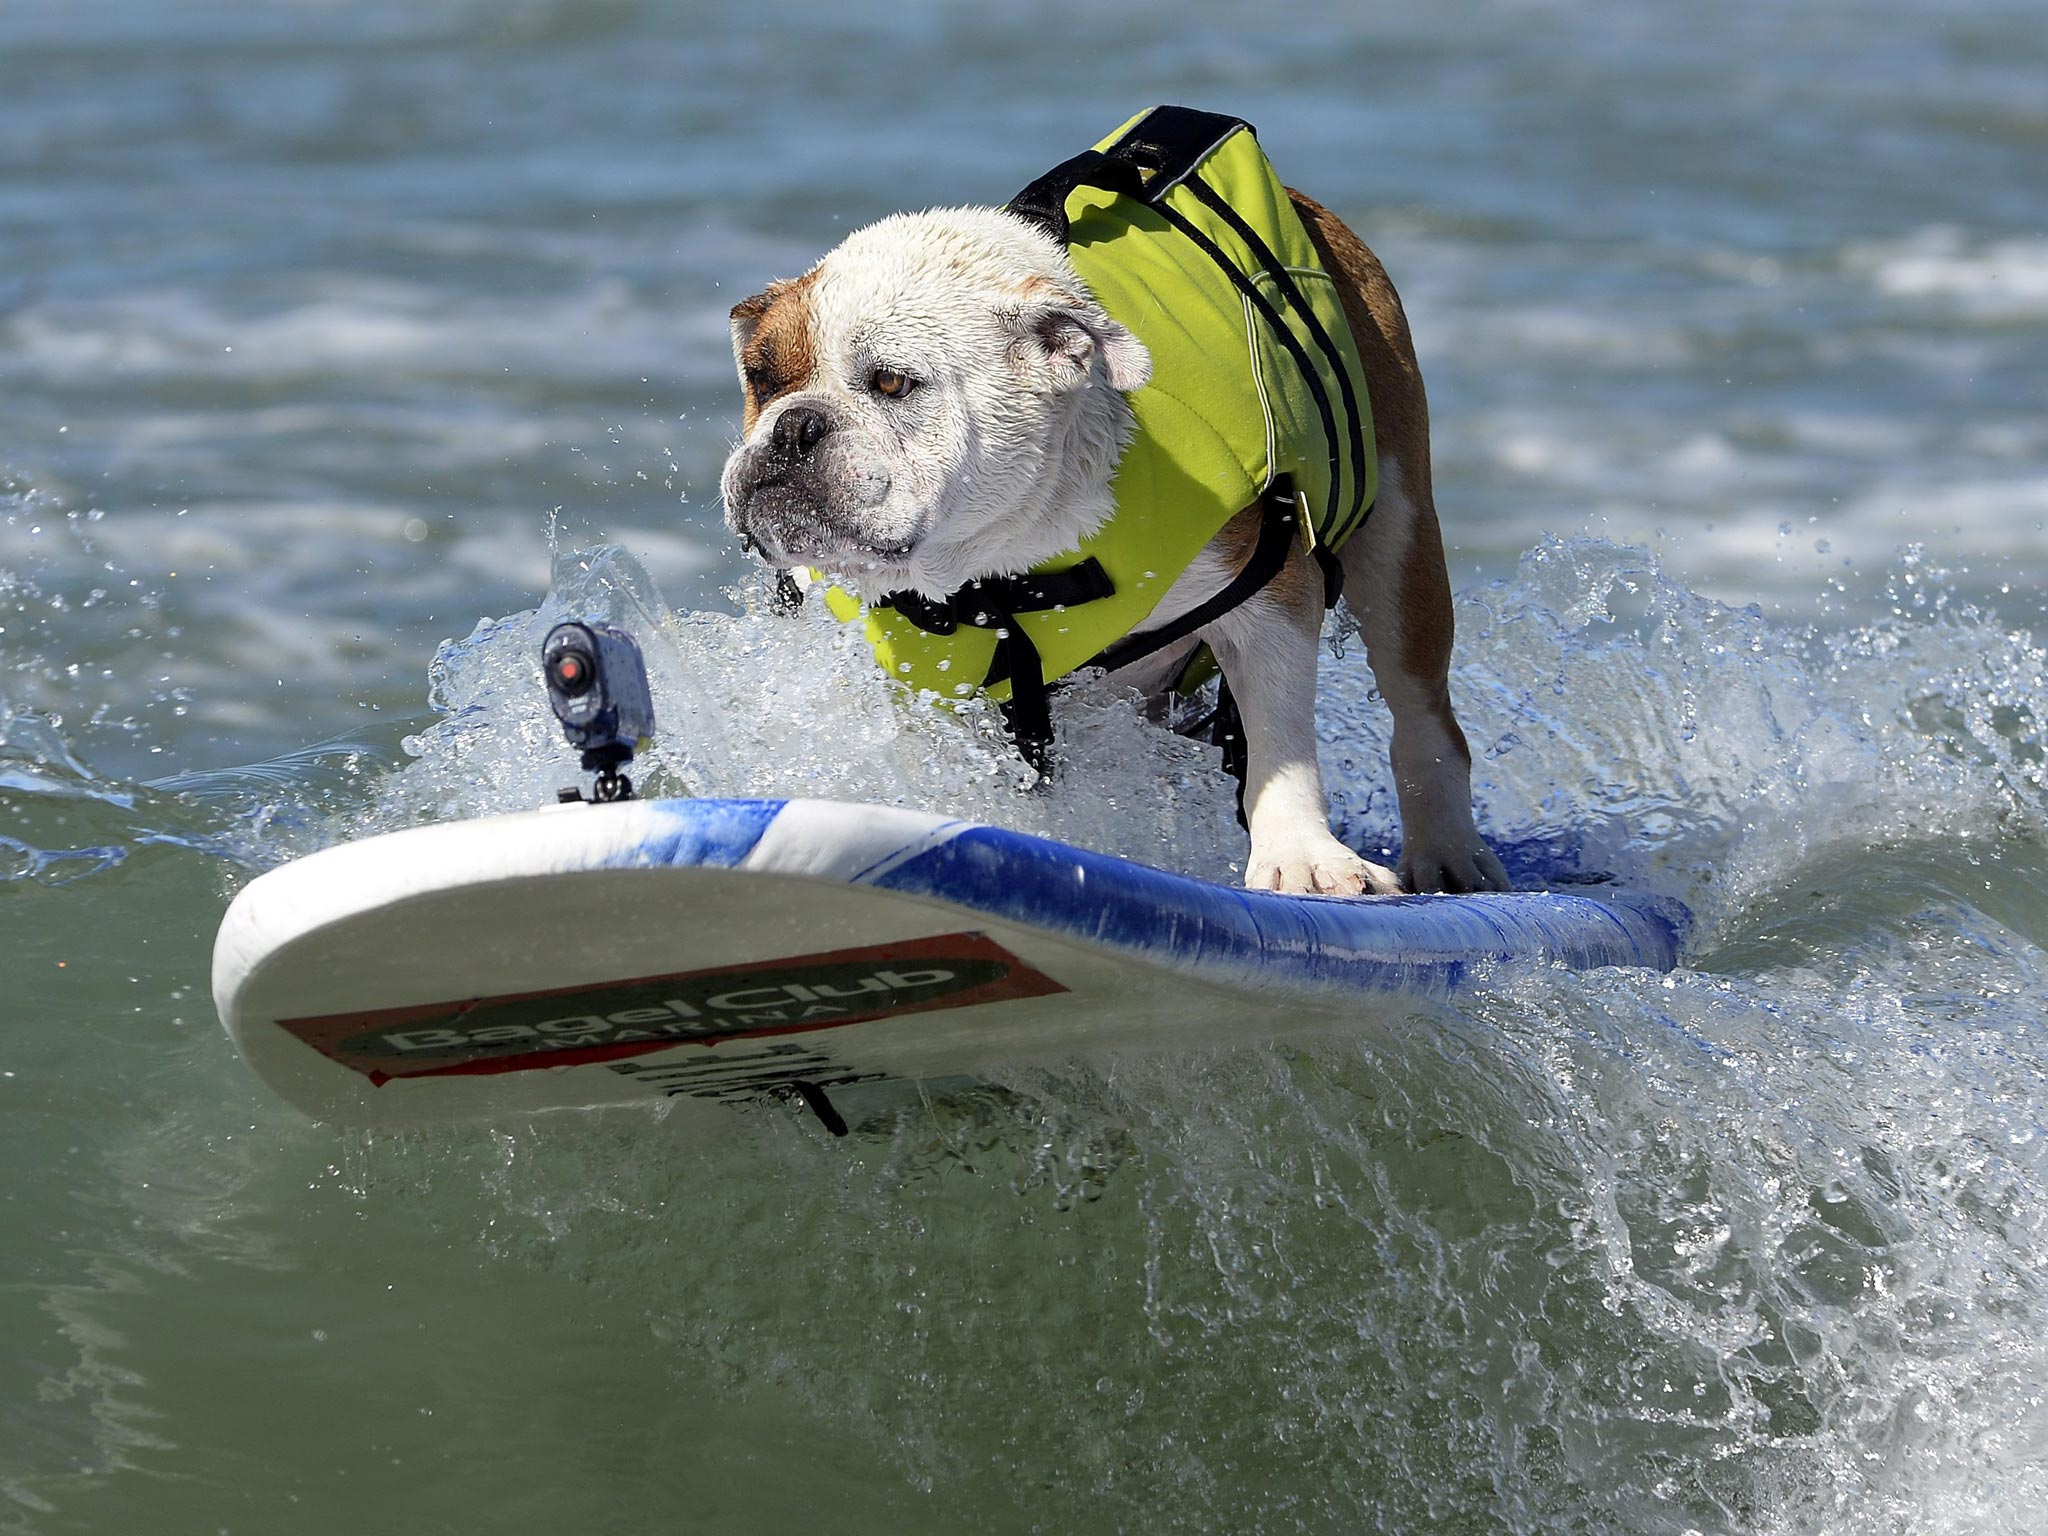 In pictures: Dog surfing championships in California | The